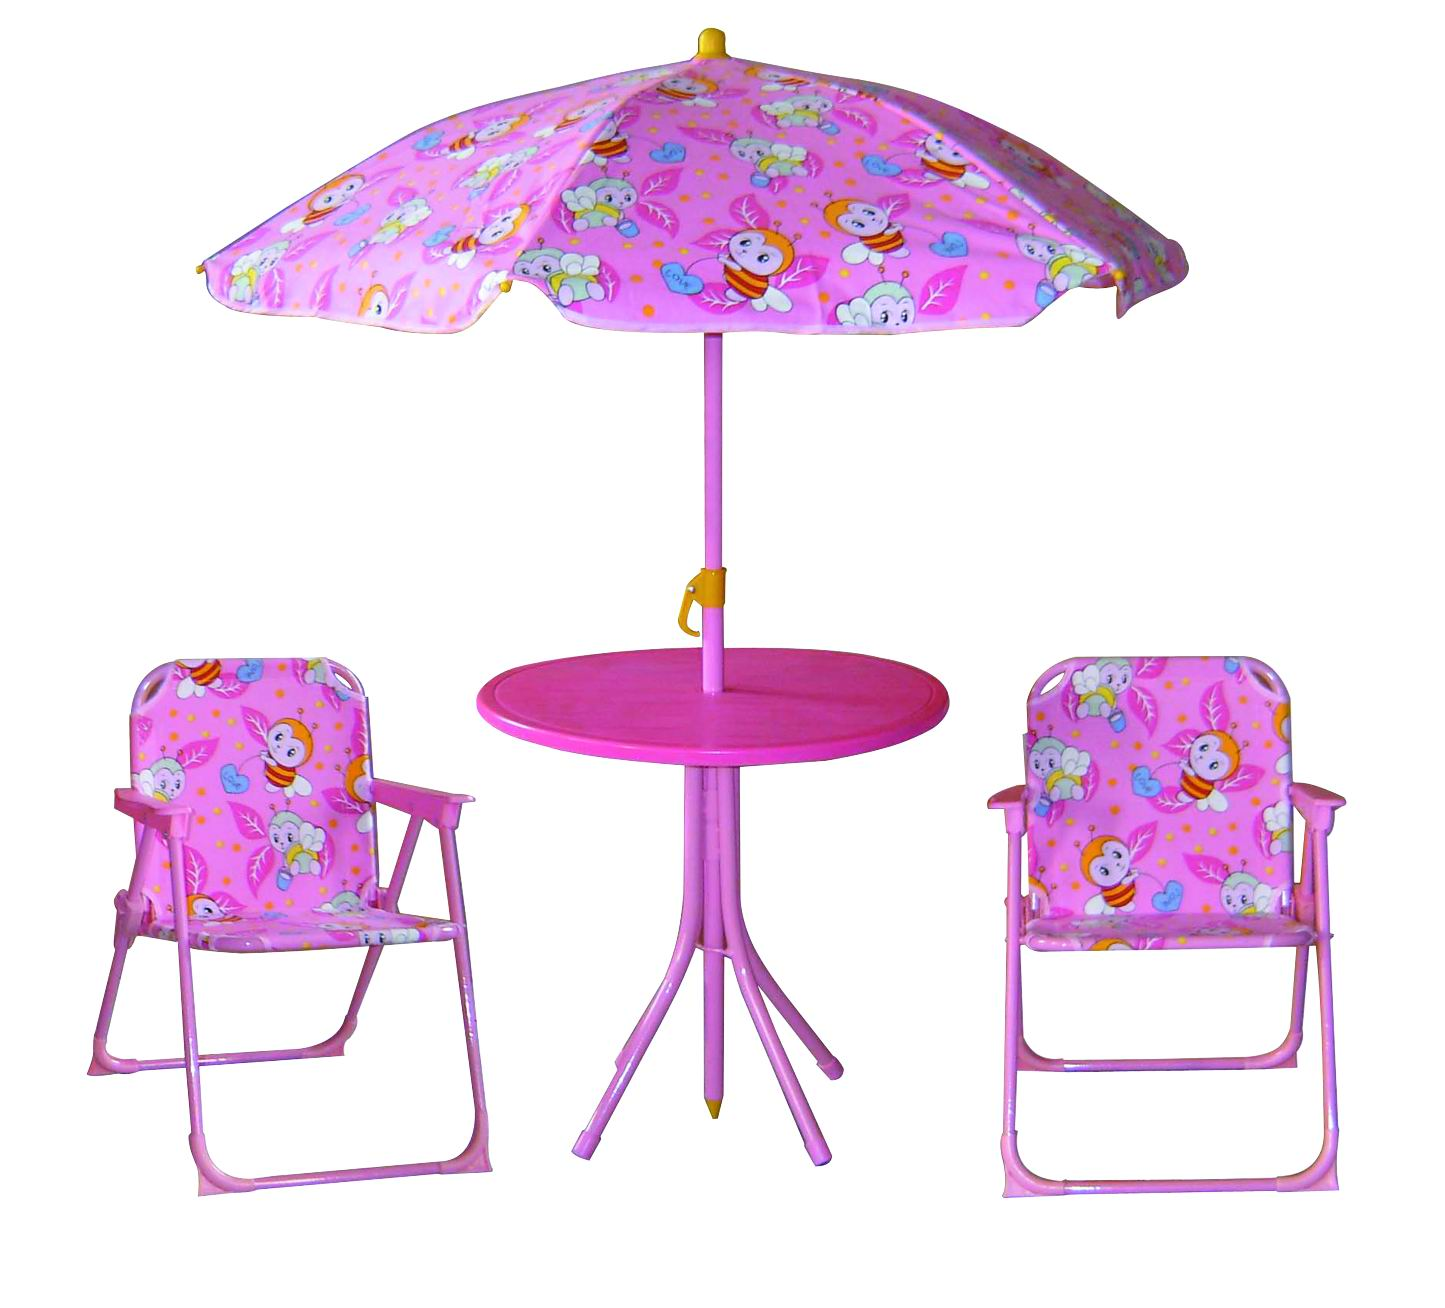 - Kids Portable Folding Garden Table And Chair Sets - Buy Portable